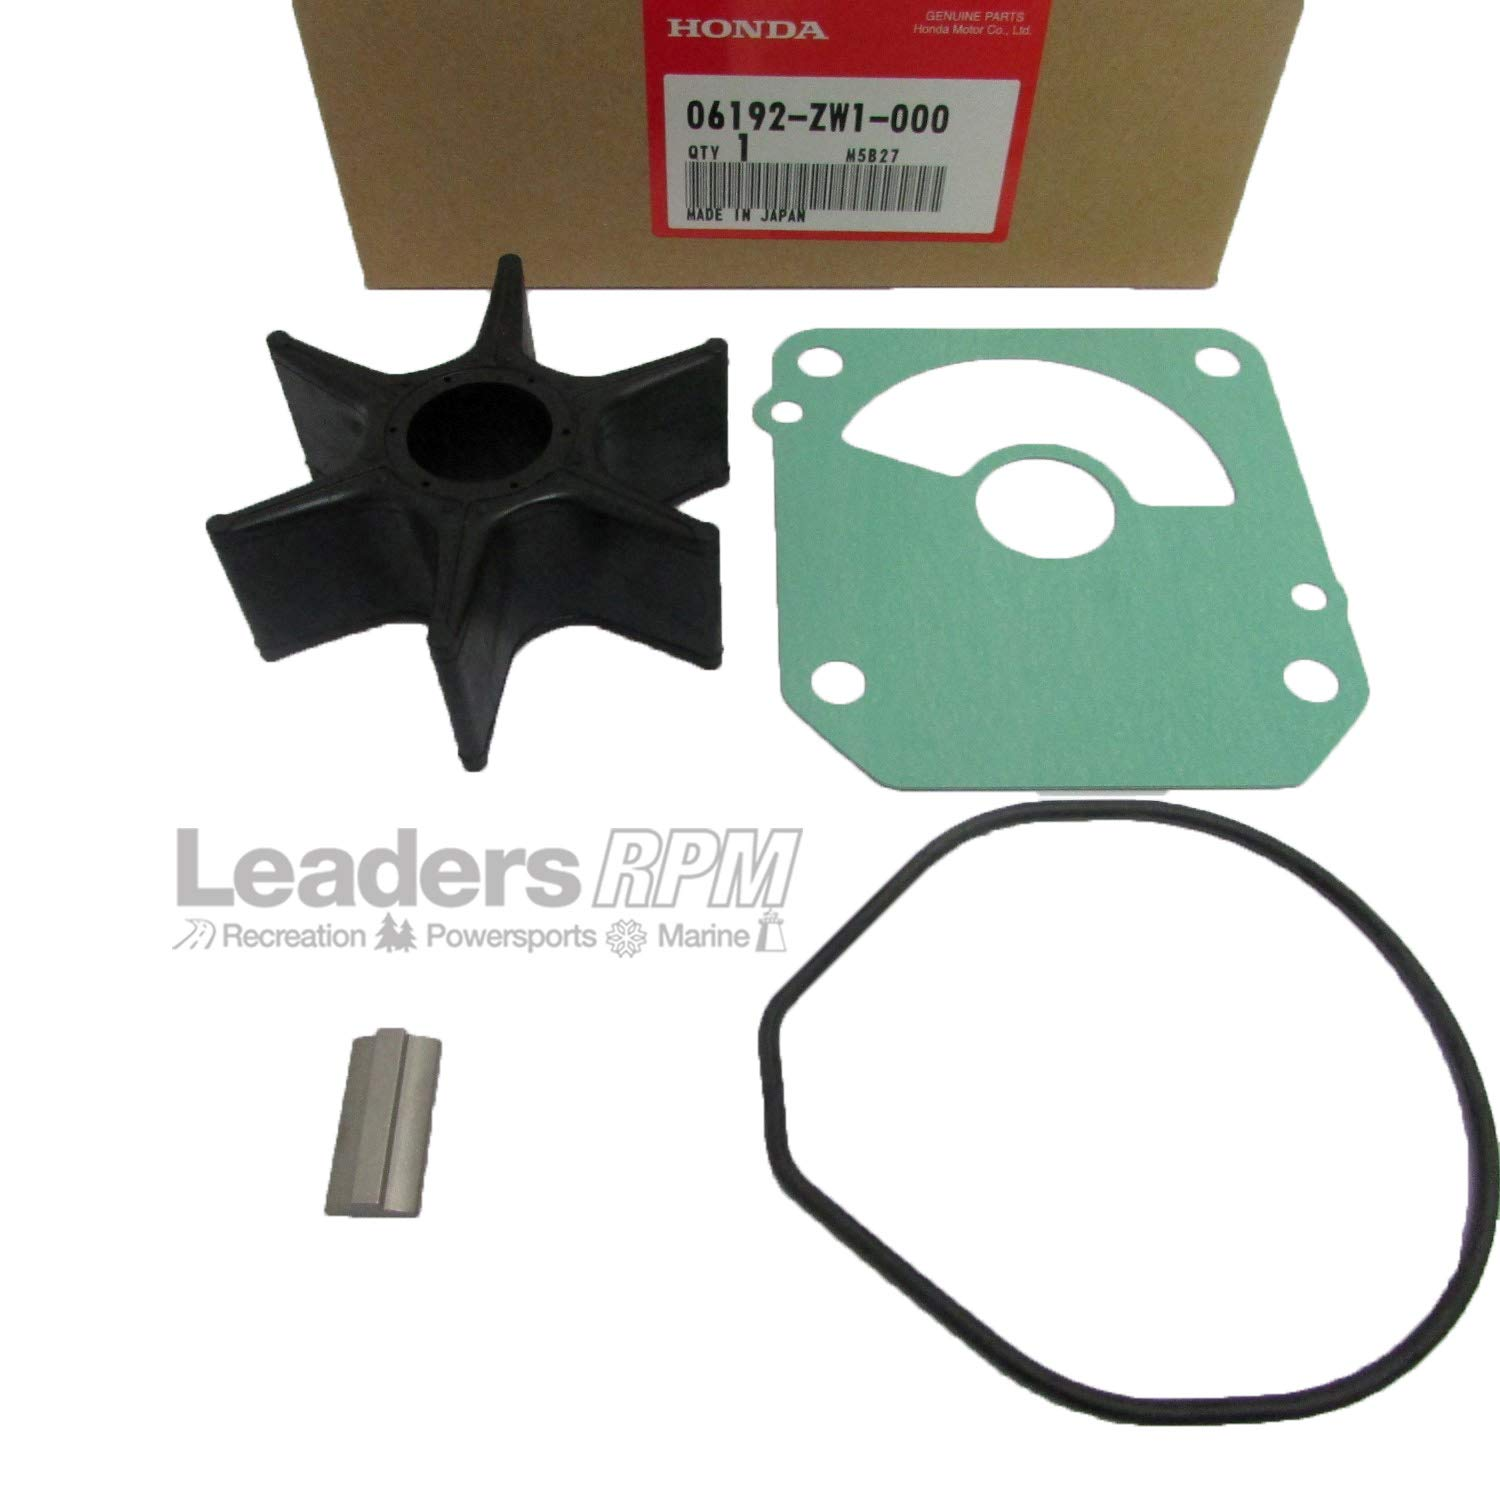 HONDA OUTBOARD  REPLACMENT IMPELLER FITS BF130A IMPELLER KIT PN 06192-ZW1-000